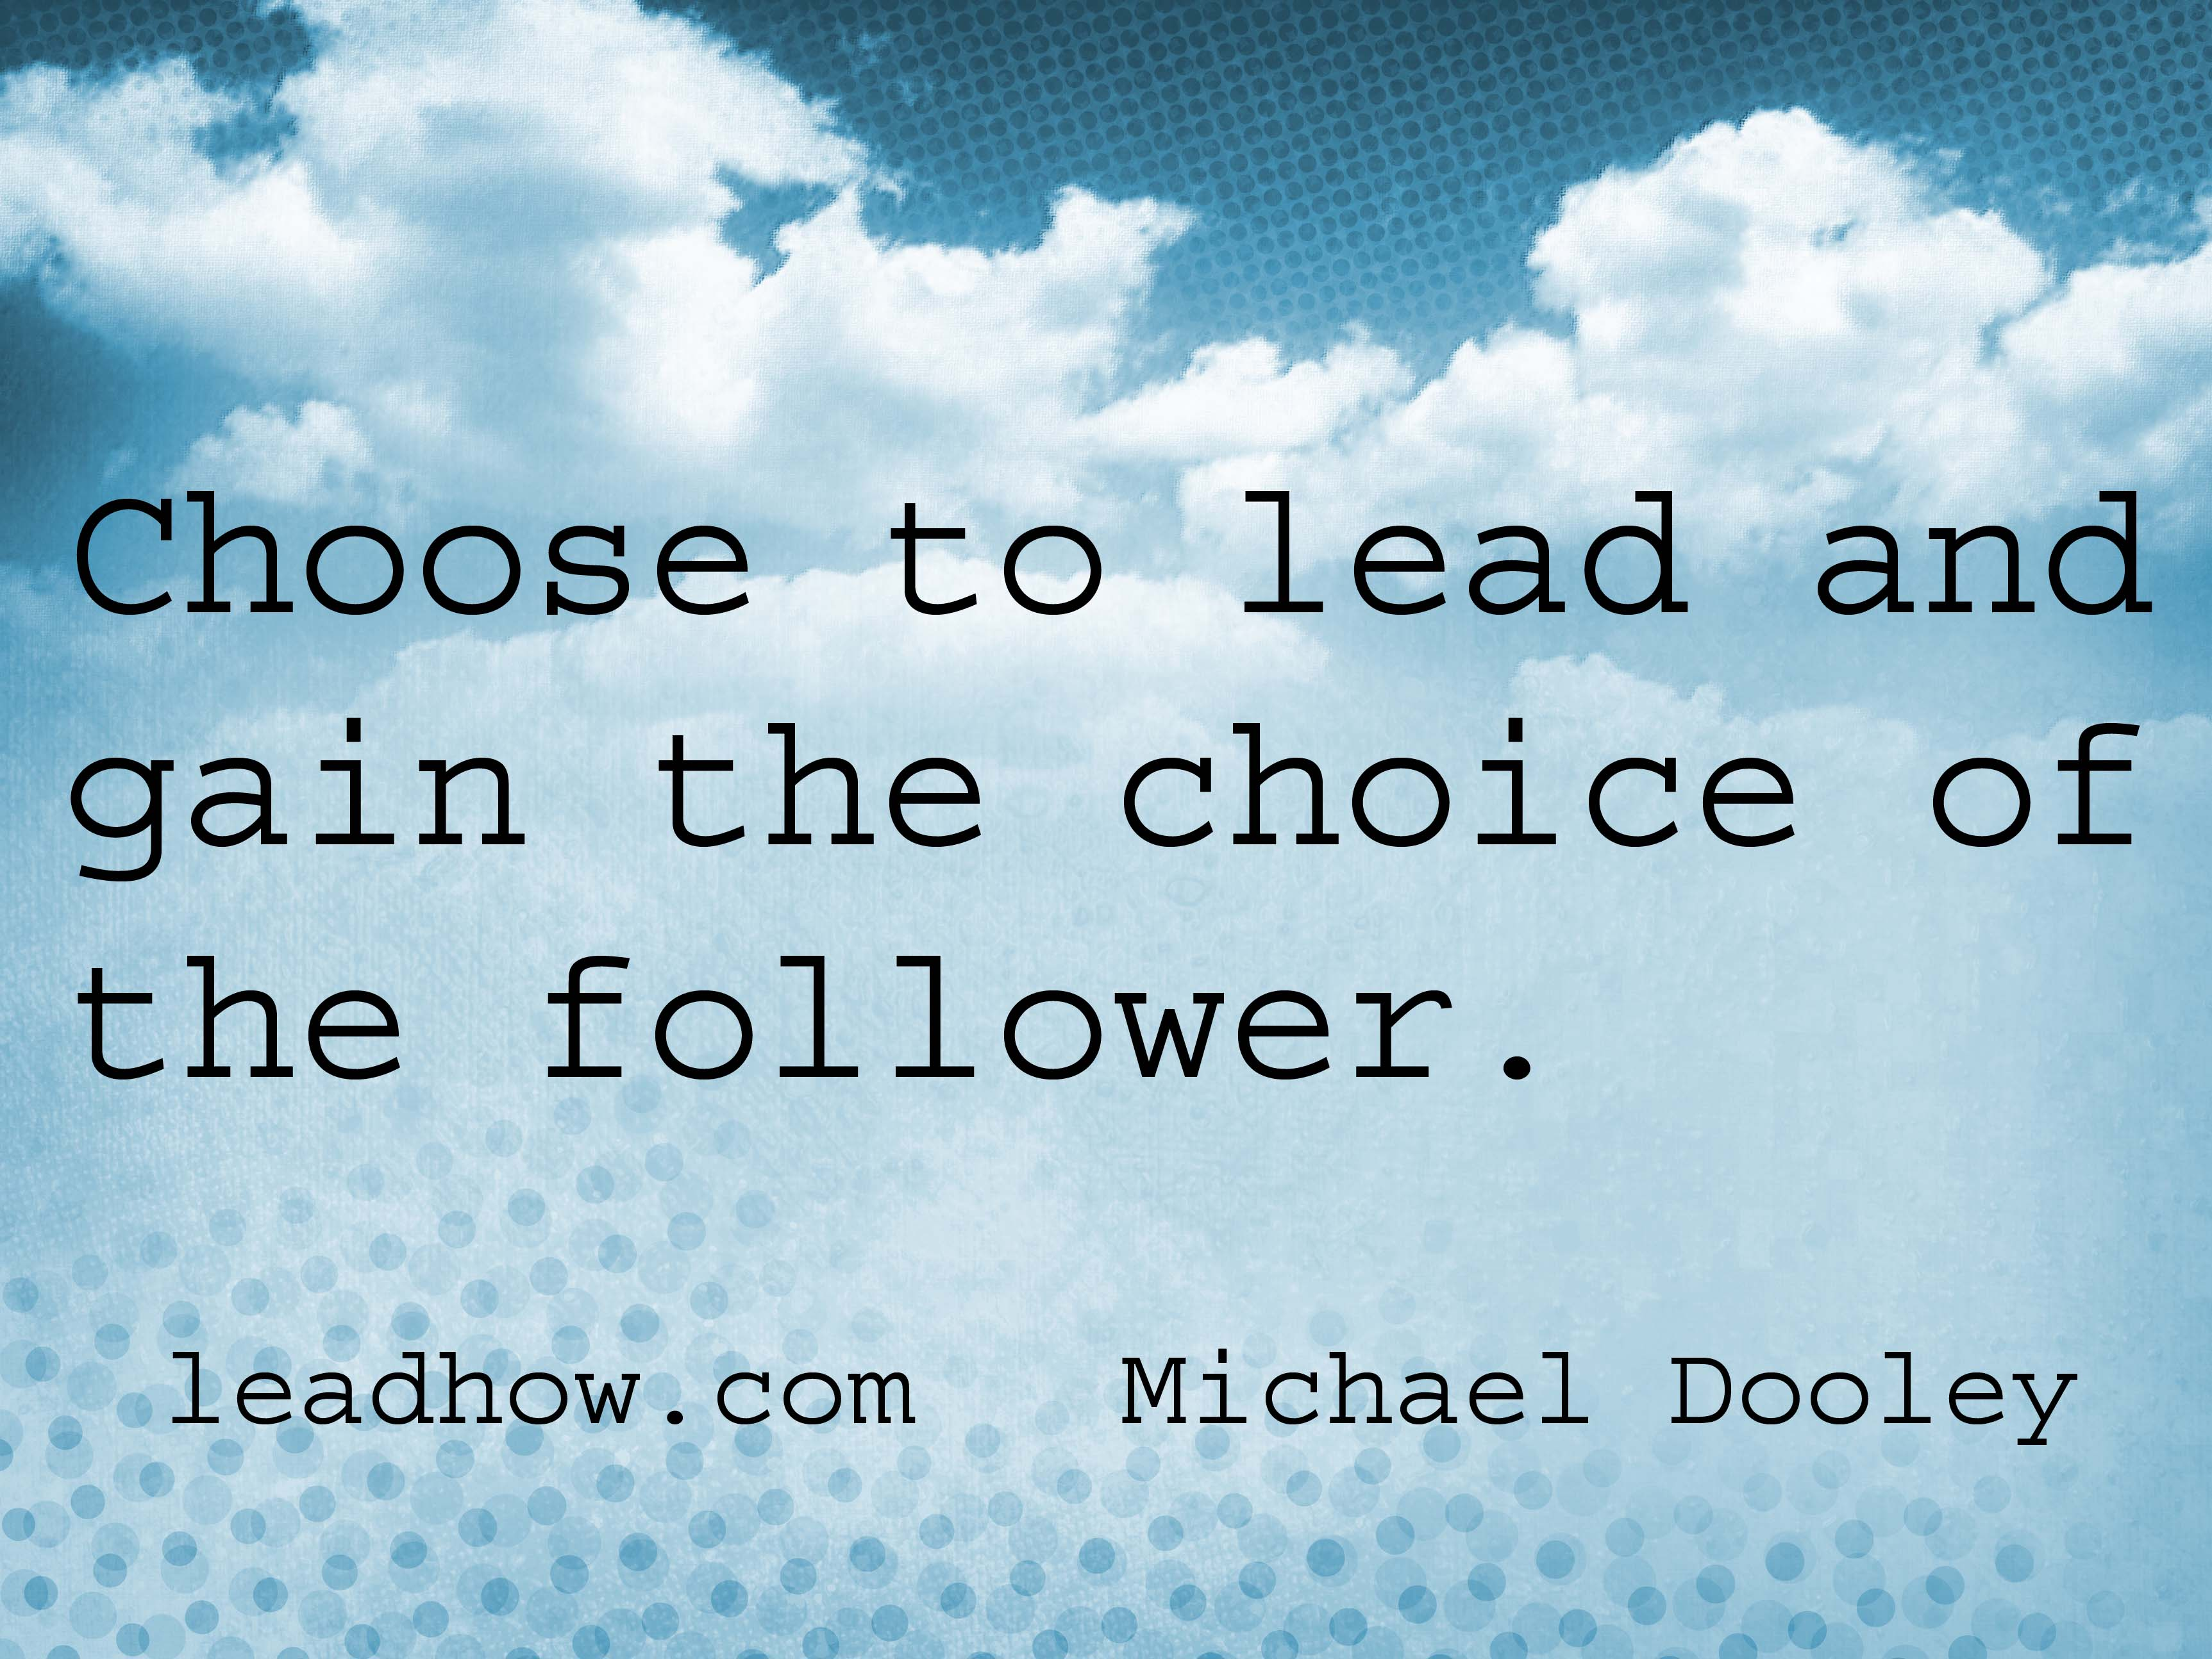 Leadership Quote Choice Of The Follower Michaeldooleyblog